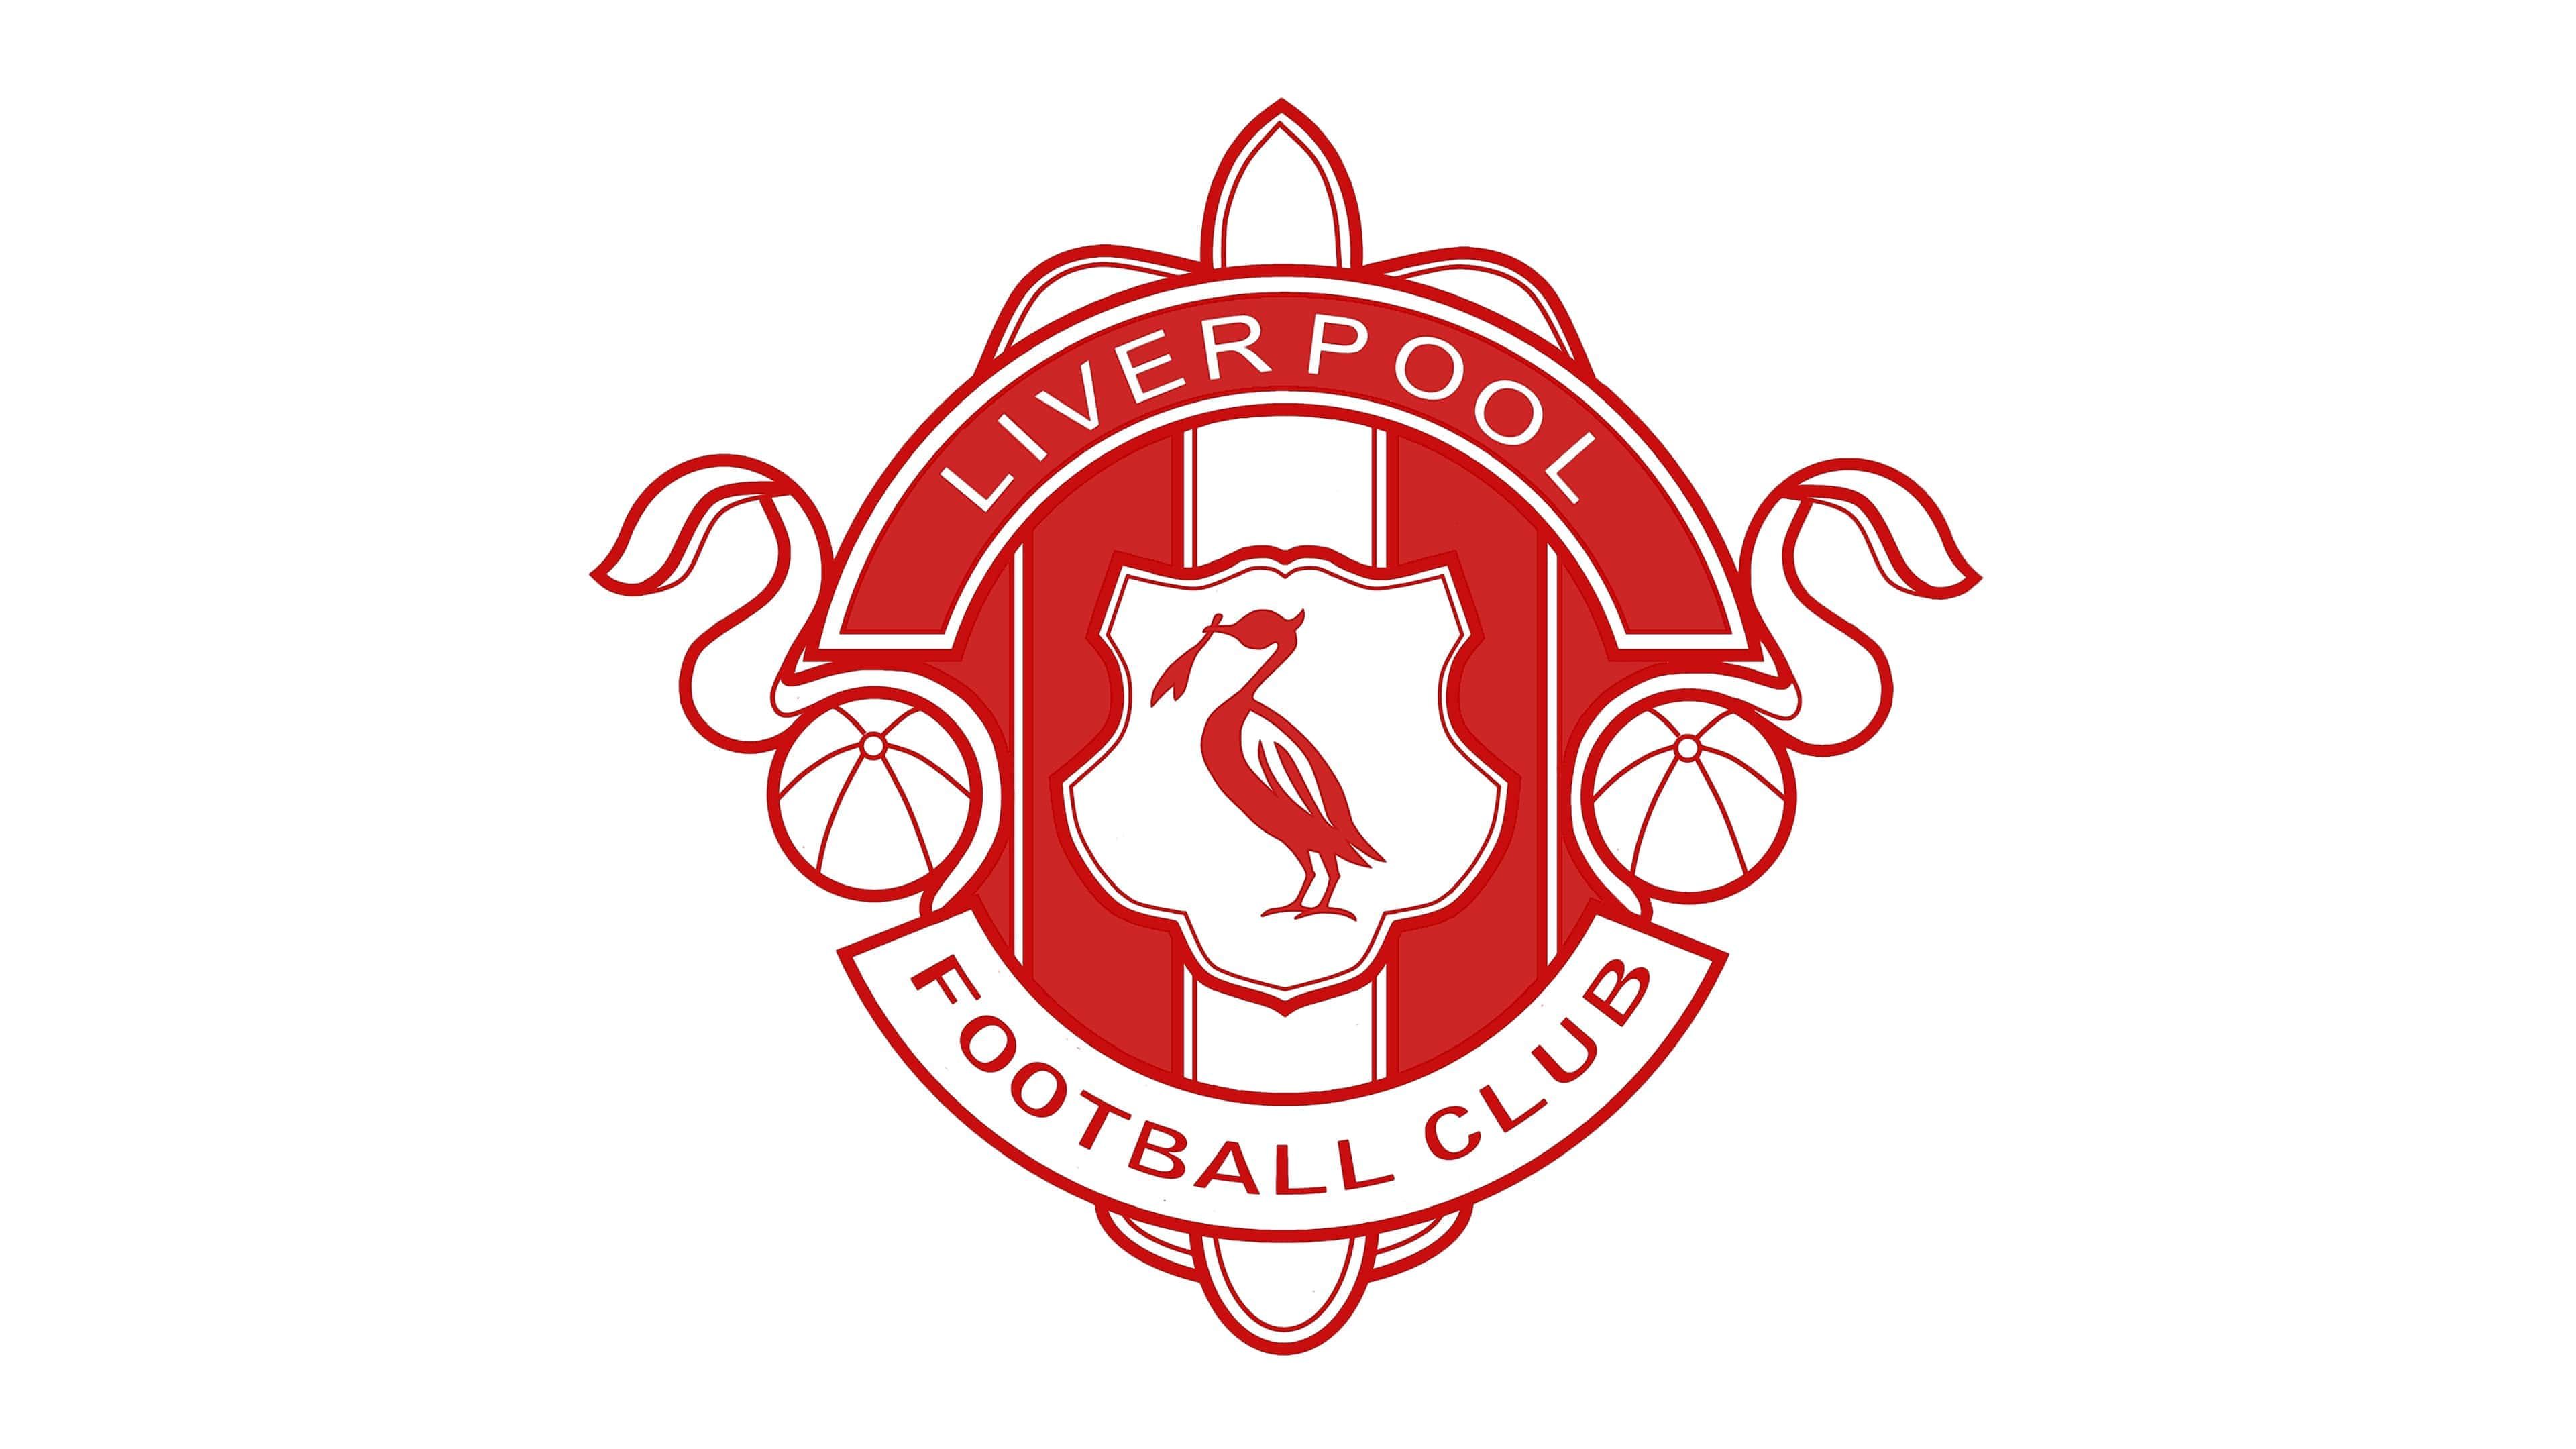 Liverpool Logo The Most Famous Brands And Company Logos In The World